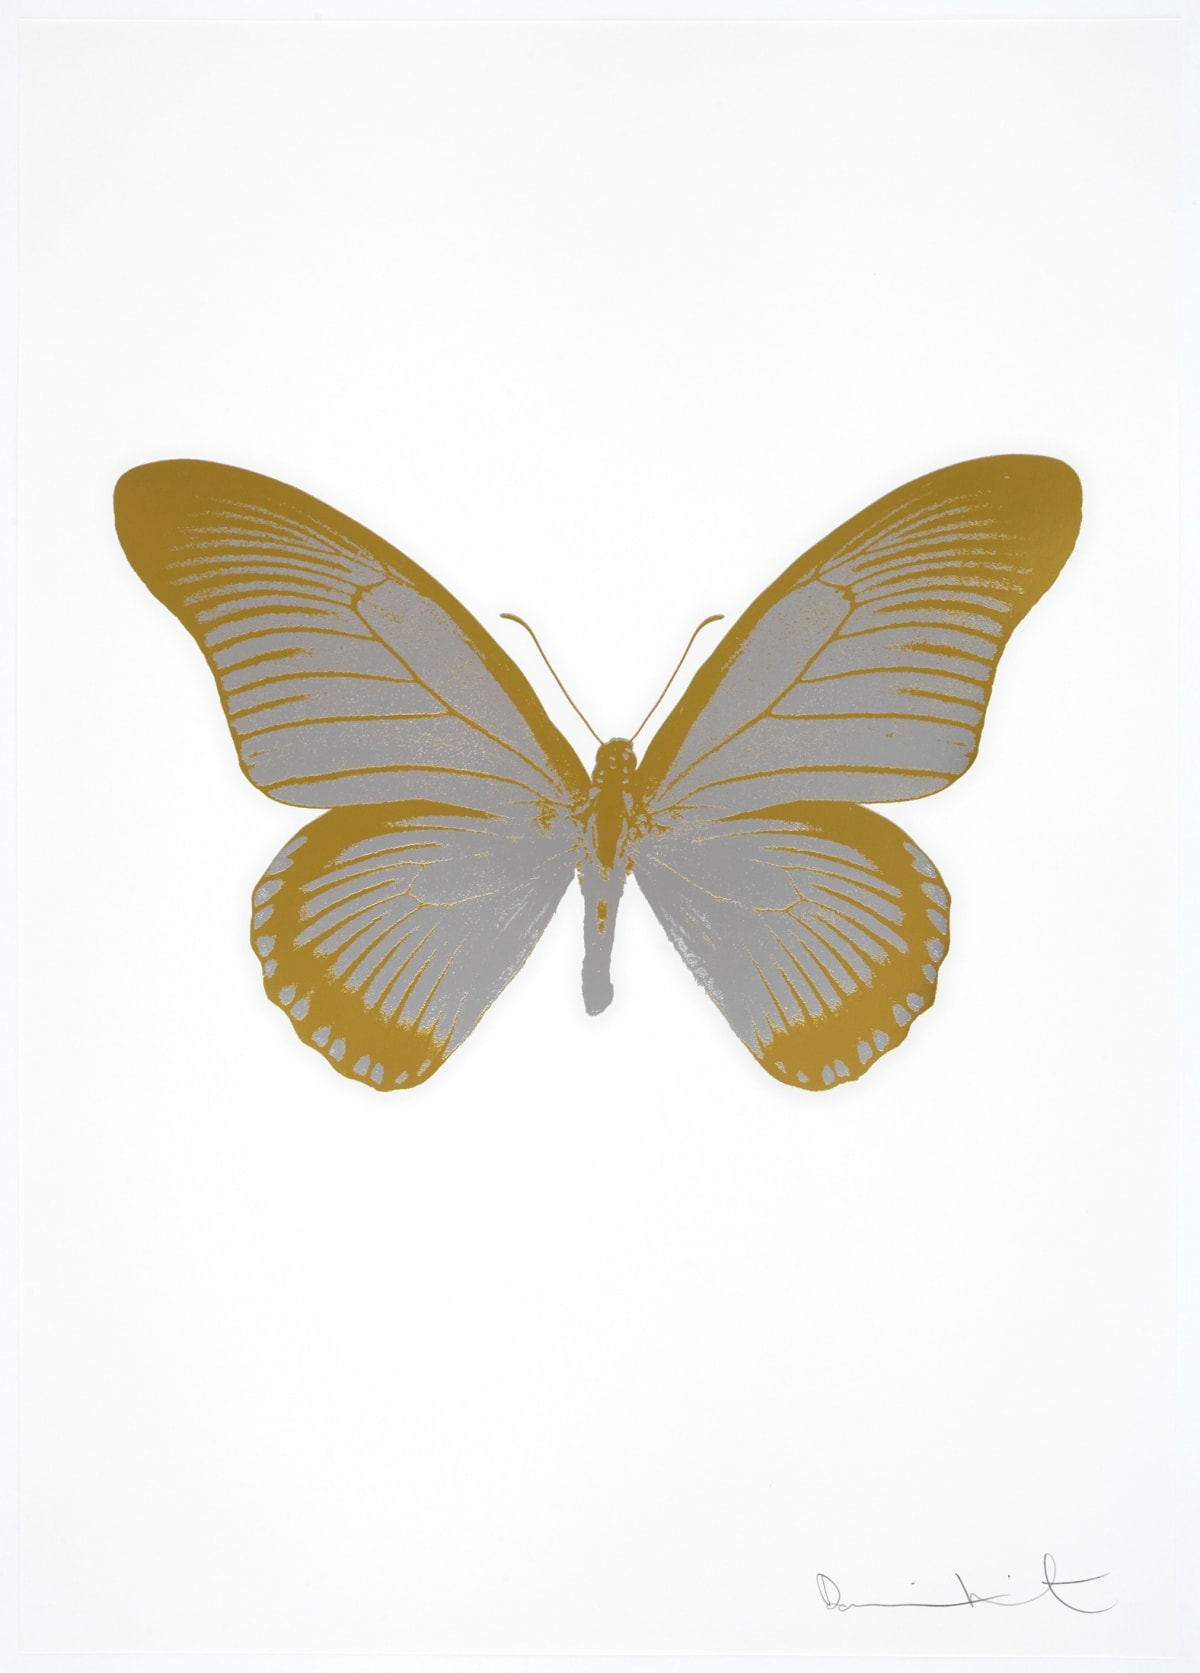 Damien Hirst The Souls IV - Silver Gloss/Oriental Gold, 2010 2 colour foil block on 300gsm Arches 88 archival paper. Signed and numbered. Published by Paul Stolper and Other Criteria 72 x 51cm OC7989 / 1418-12 Edition of 15